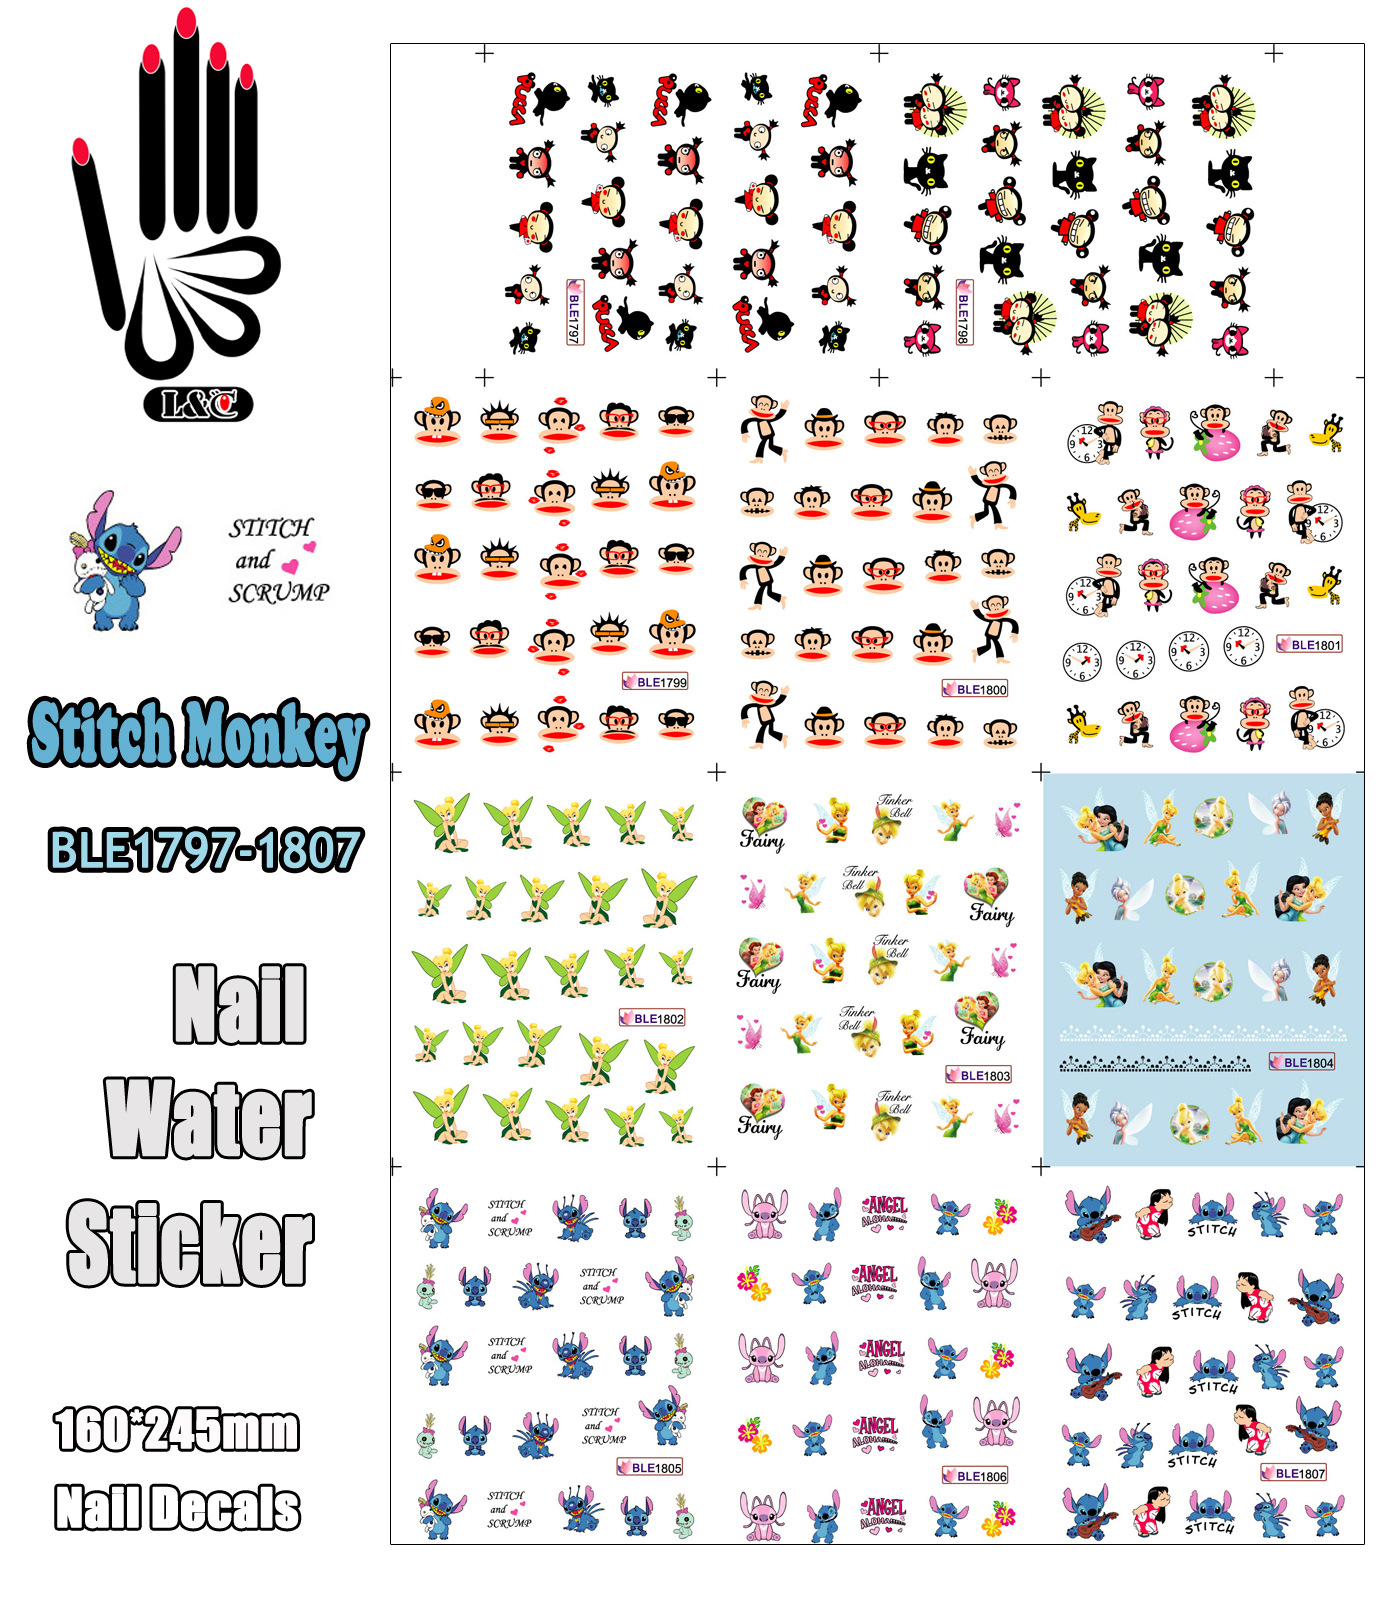 11 Sheets/Lot Art Nail BLE1797-1807 Cartoon Stitch Monkey Pucca Nail Art Water Transfer Sticker For Nail(11 DESIGNS IN 1)